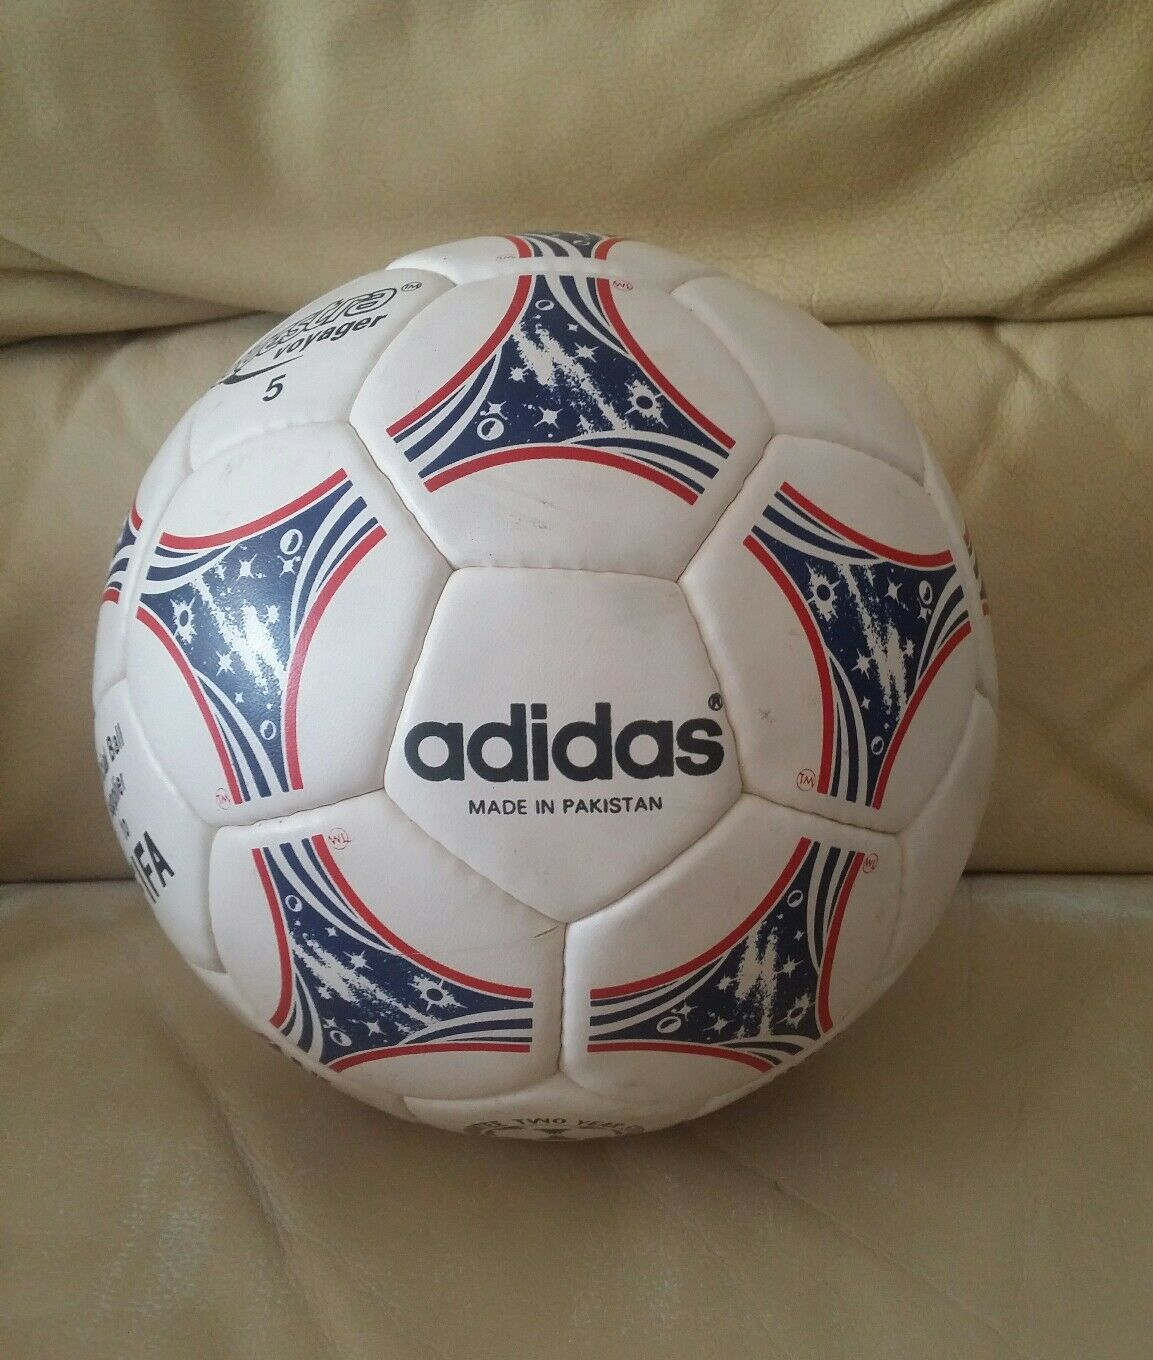 ADIDAS QUESTRA VOYAGER RARE BALL - MADE IN PAKISTAN - OFFERS WELCOME